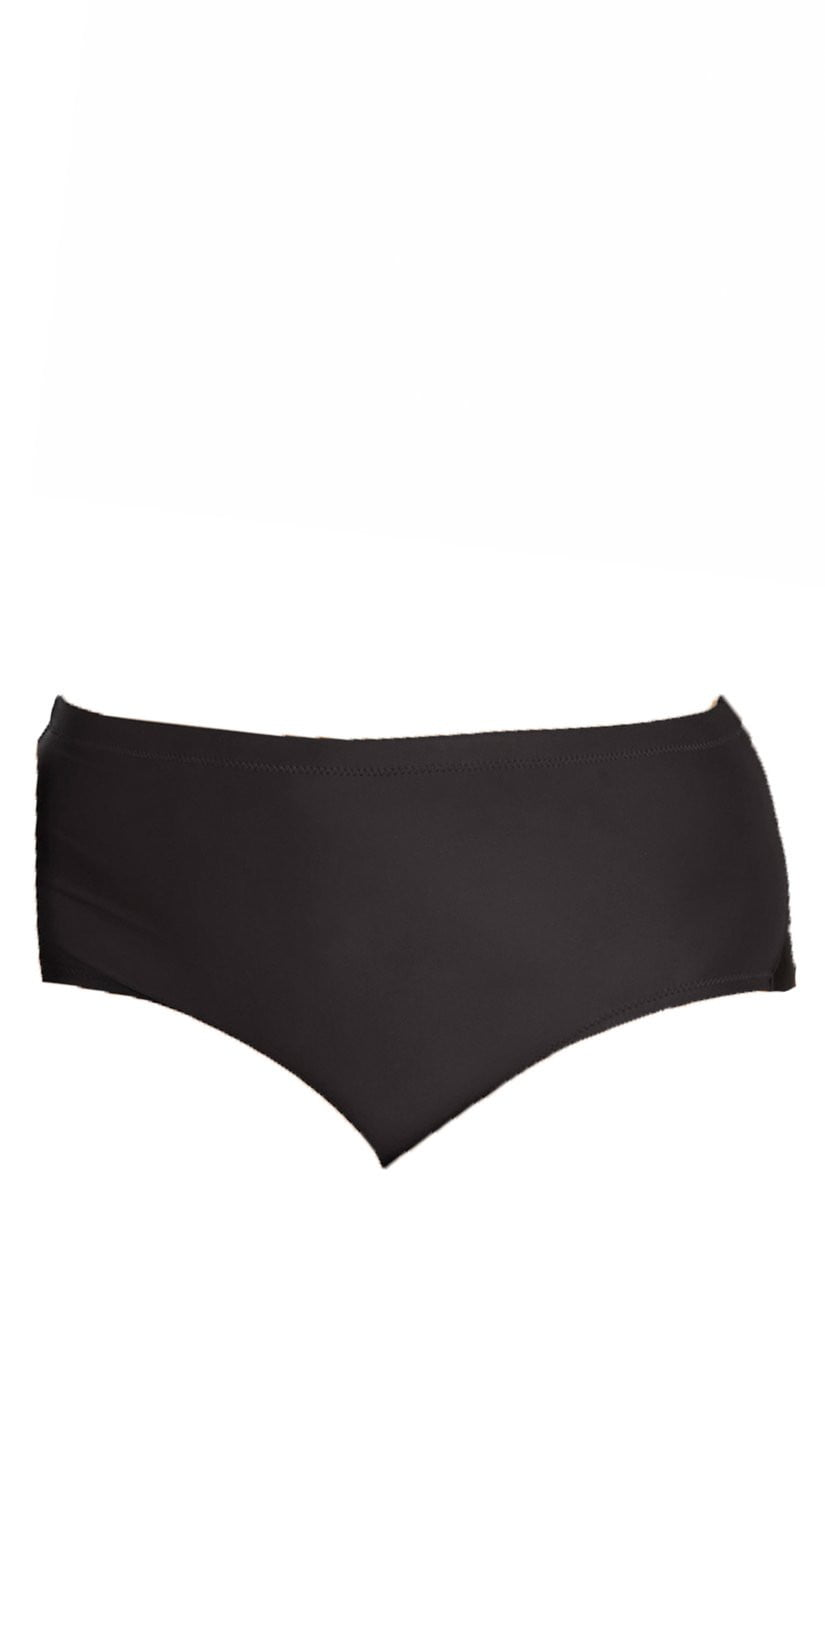 Raisins Curve Shoreline Bottom in Black Y840062-BLK front view of bottom only